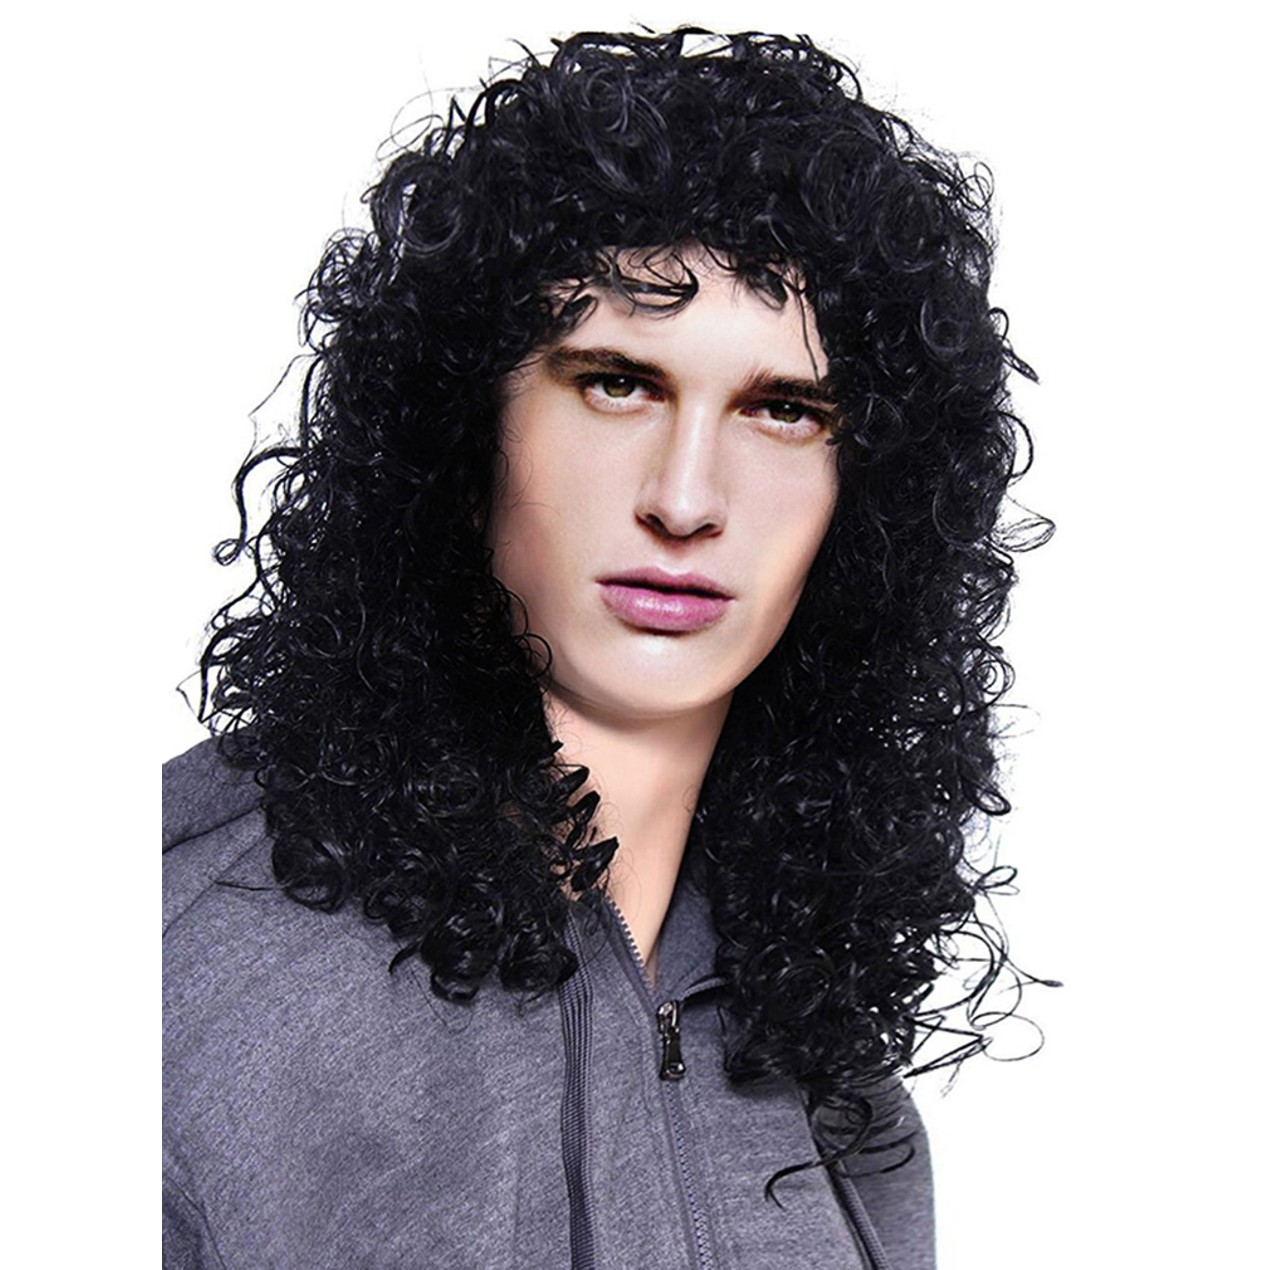 347993d1376 Men s Costume Hair Accessory Heavy Metal Rocker Long Curly Black Wig ...